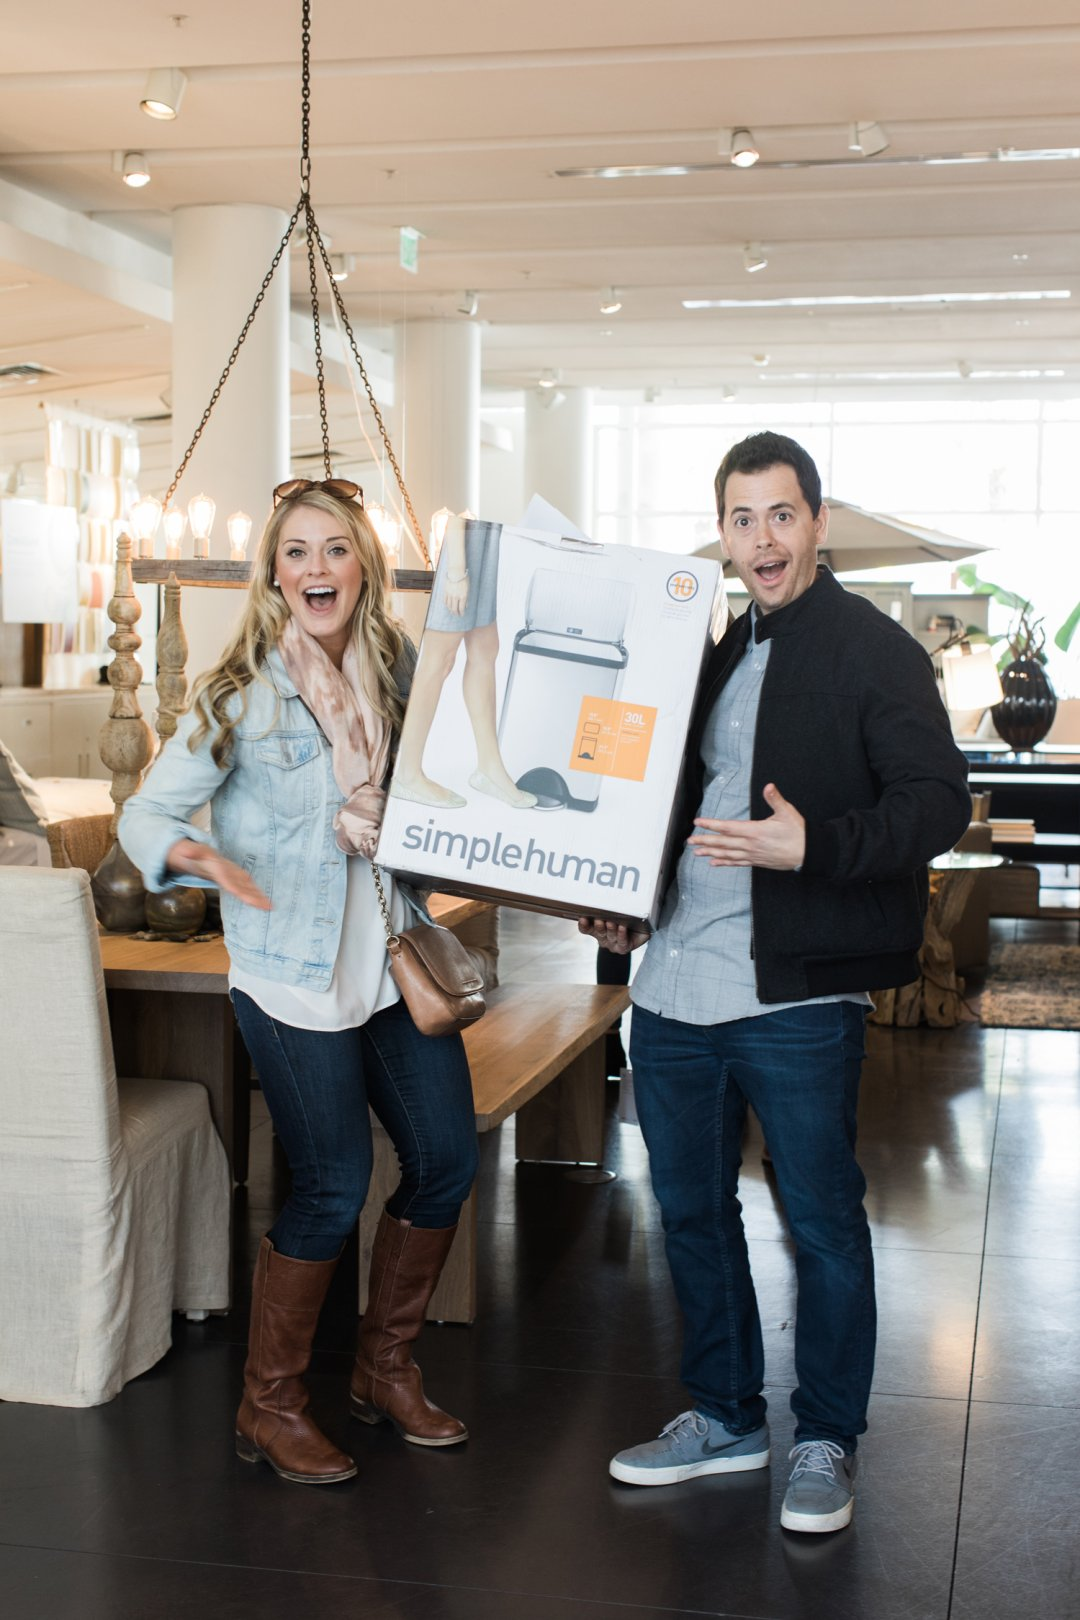 Couple wins Simplehuman trash can